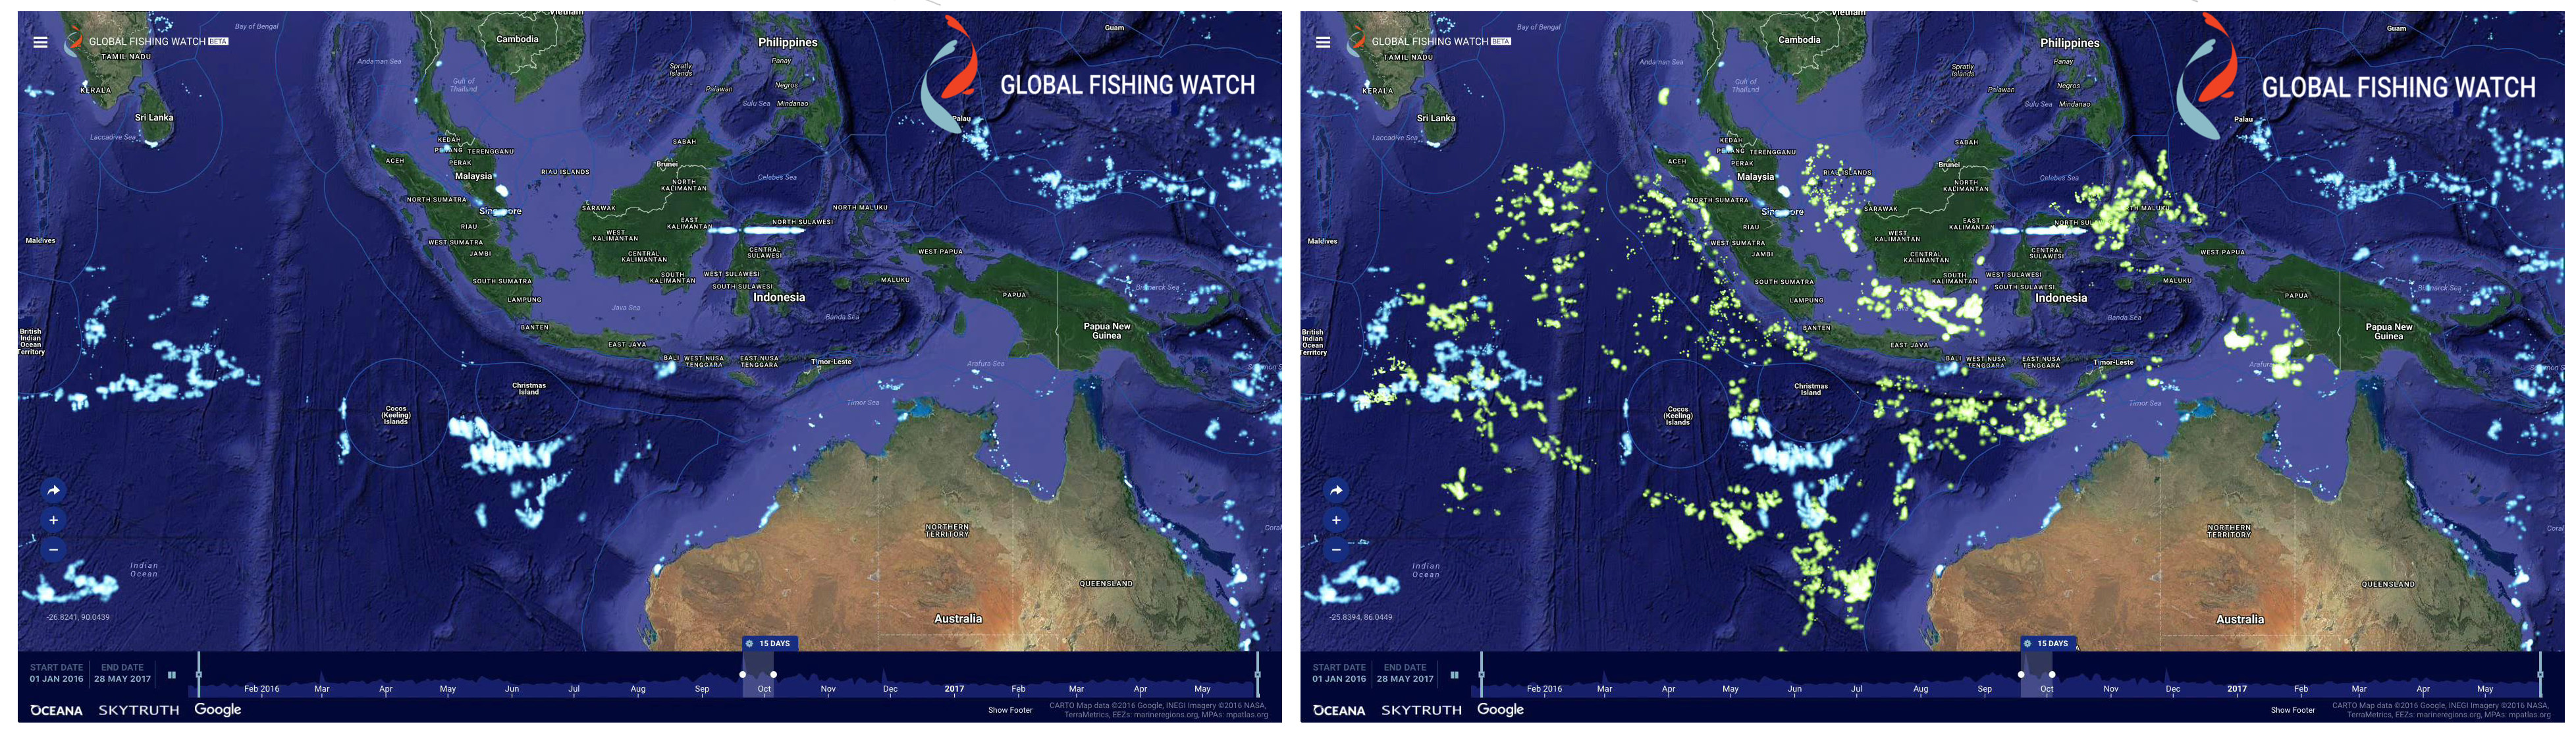 Global Fishing Watch uses publicly broadcast AIS signals to track fishing vessels. On the Global Fishing Watch heat map, every lighted point represents a fishing vessel. The blue points are vessels detected through AIS, the green points represent nearly 5,000 additional vessels revealed through Indonesia's Vessel Monitoring System data.